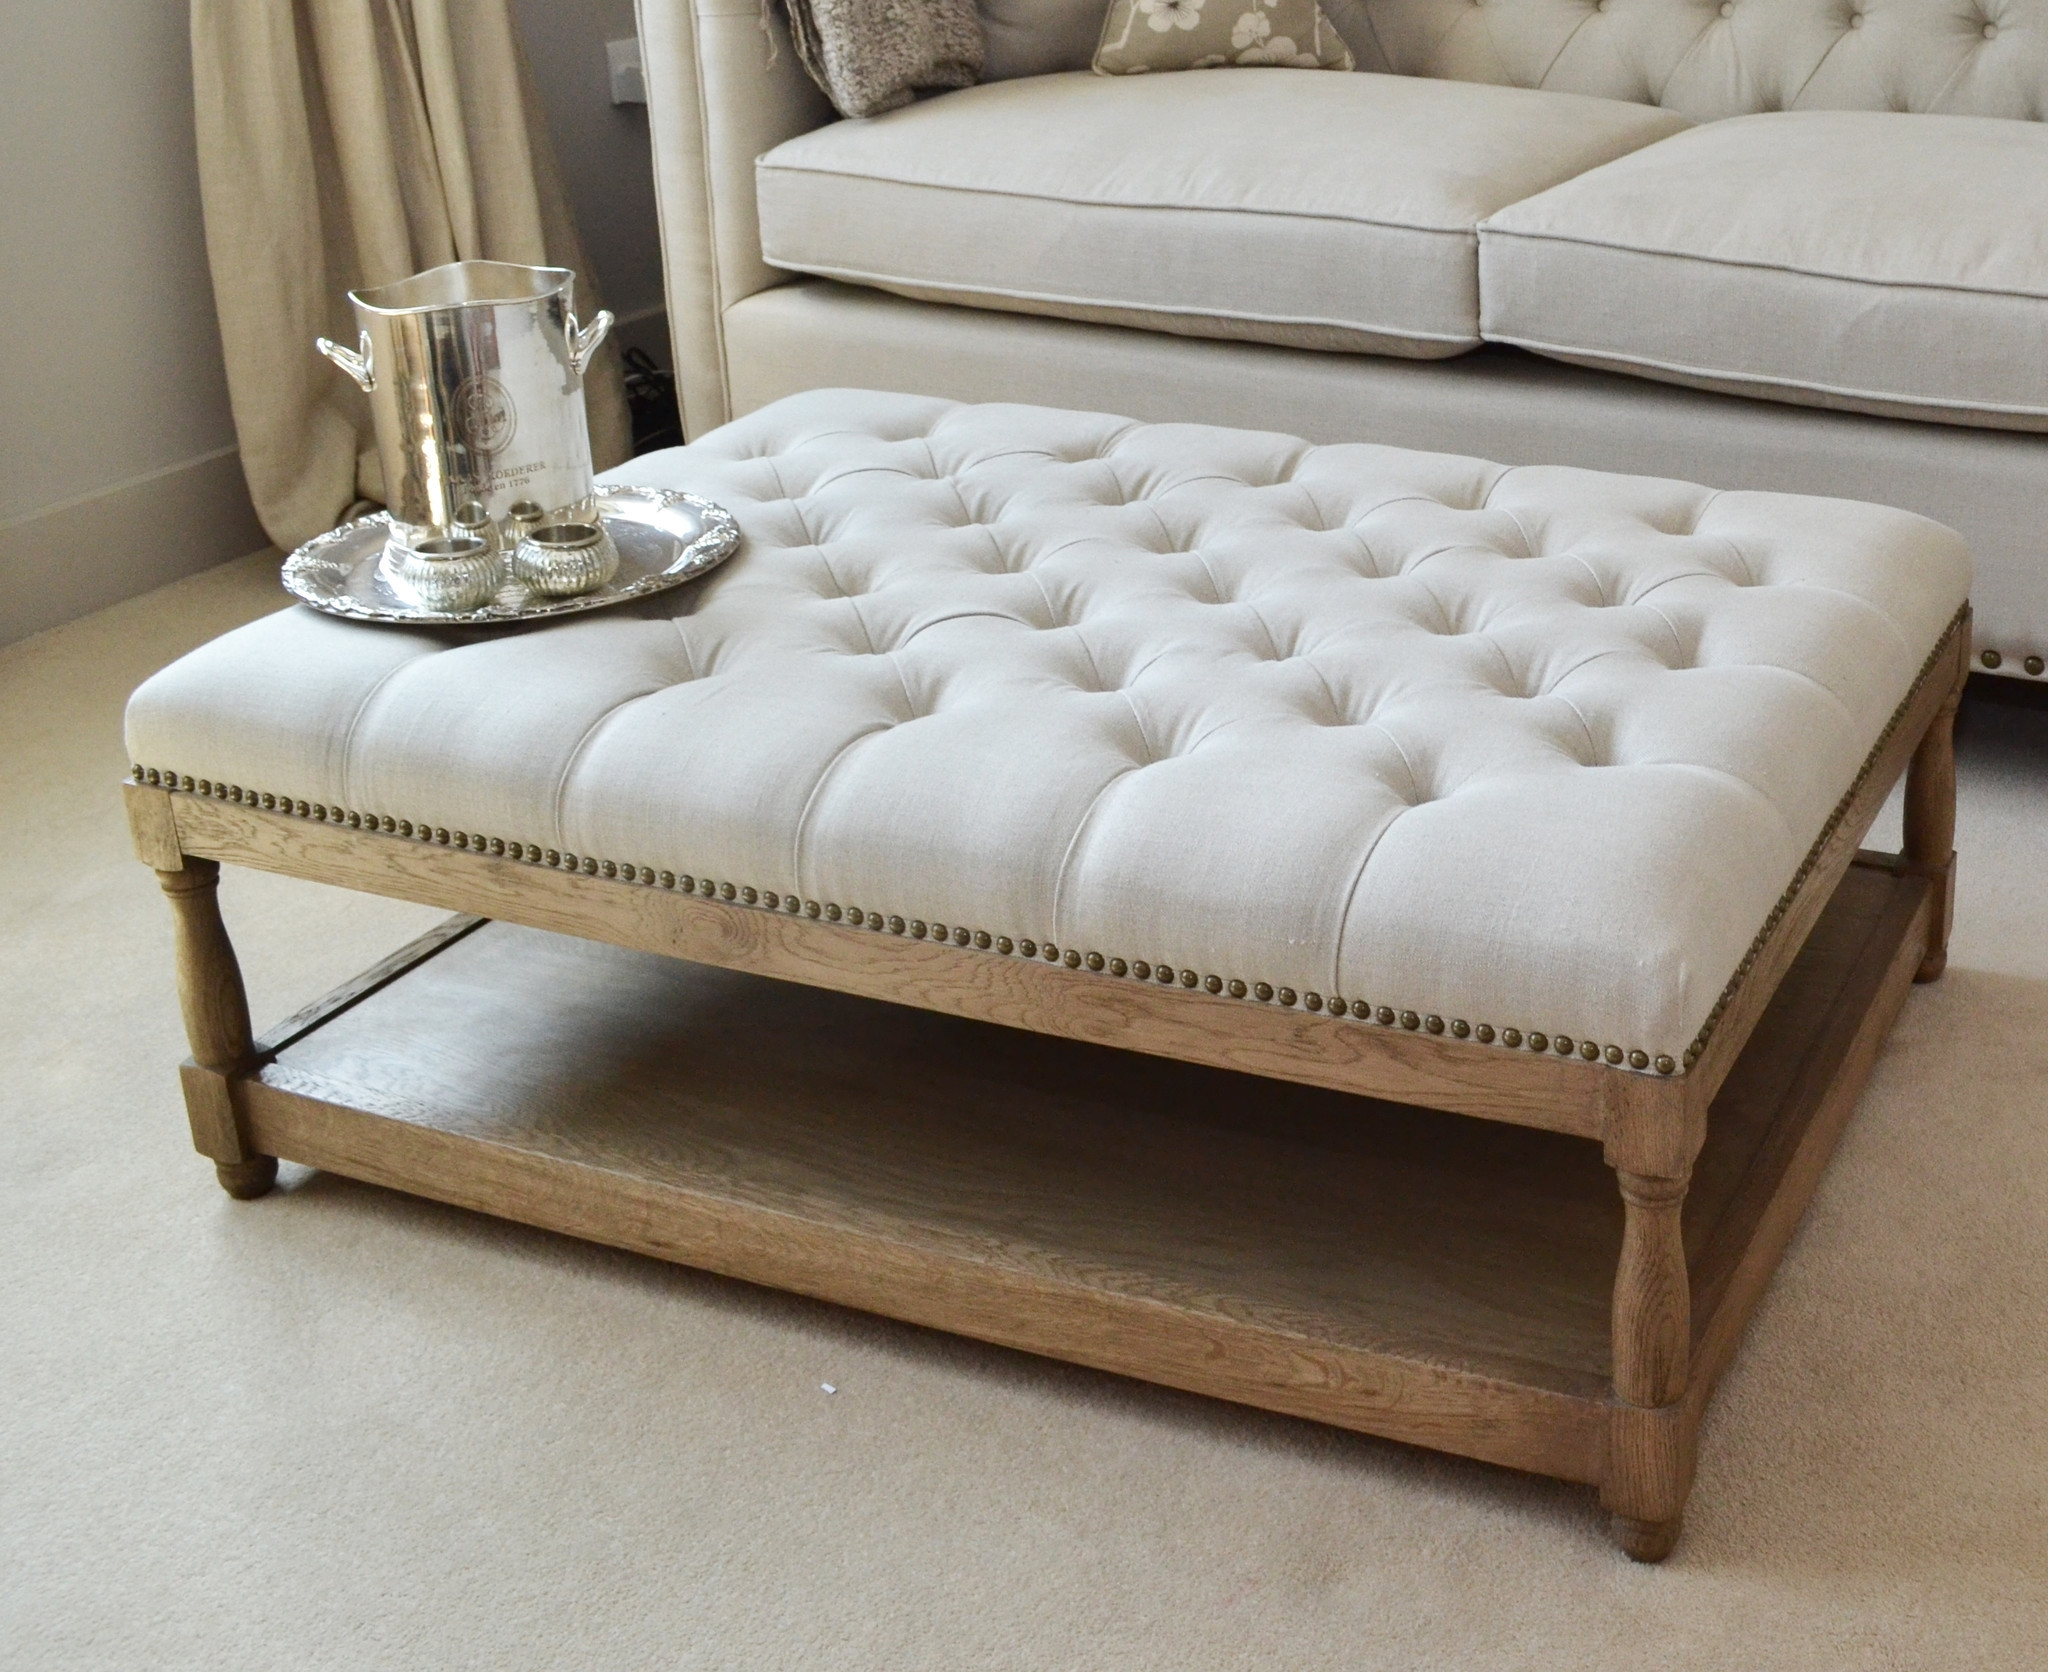 Classy Coffee Table Footstool For Diy Home Interior Ideas With In Intended For Large Footstools (Image 8 of 15)